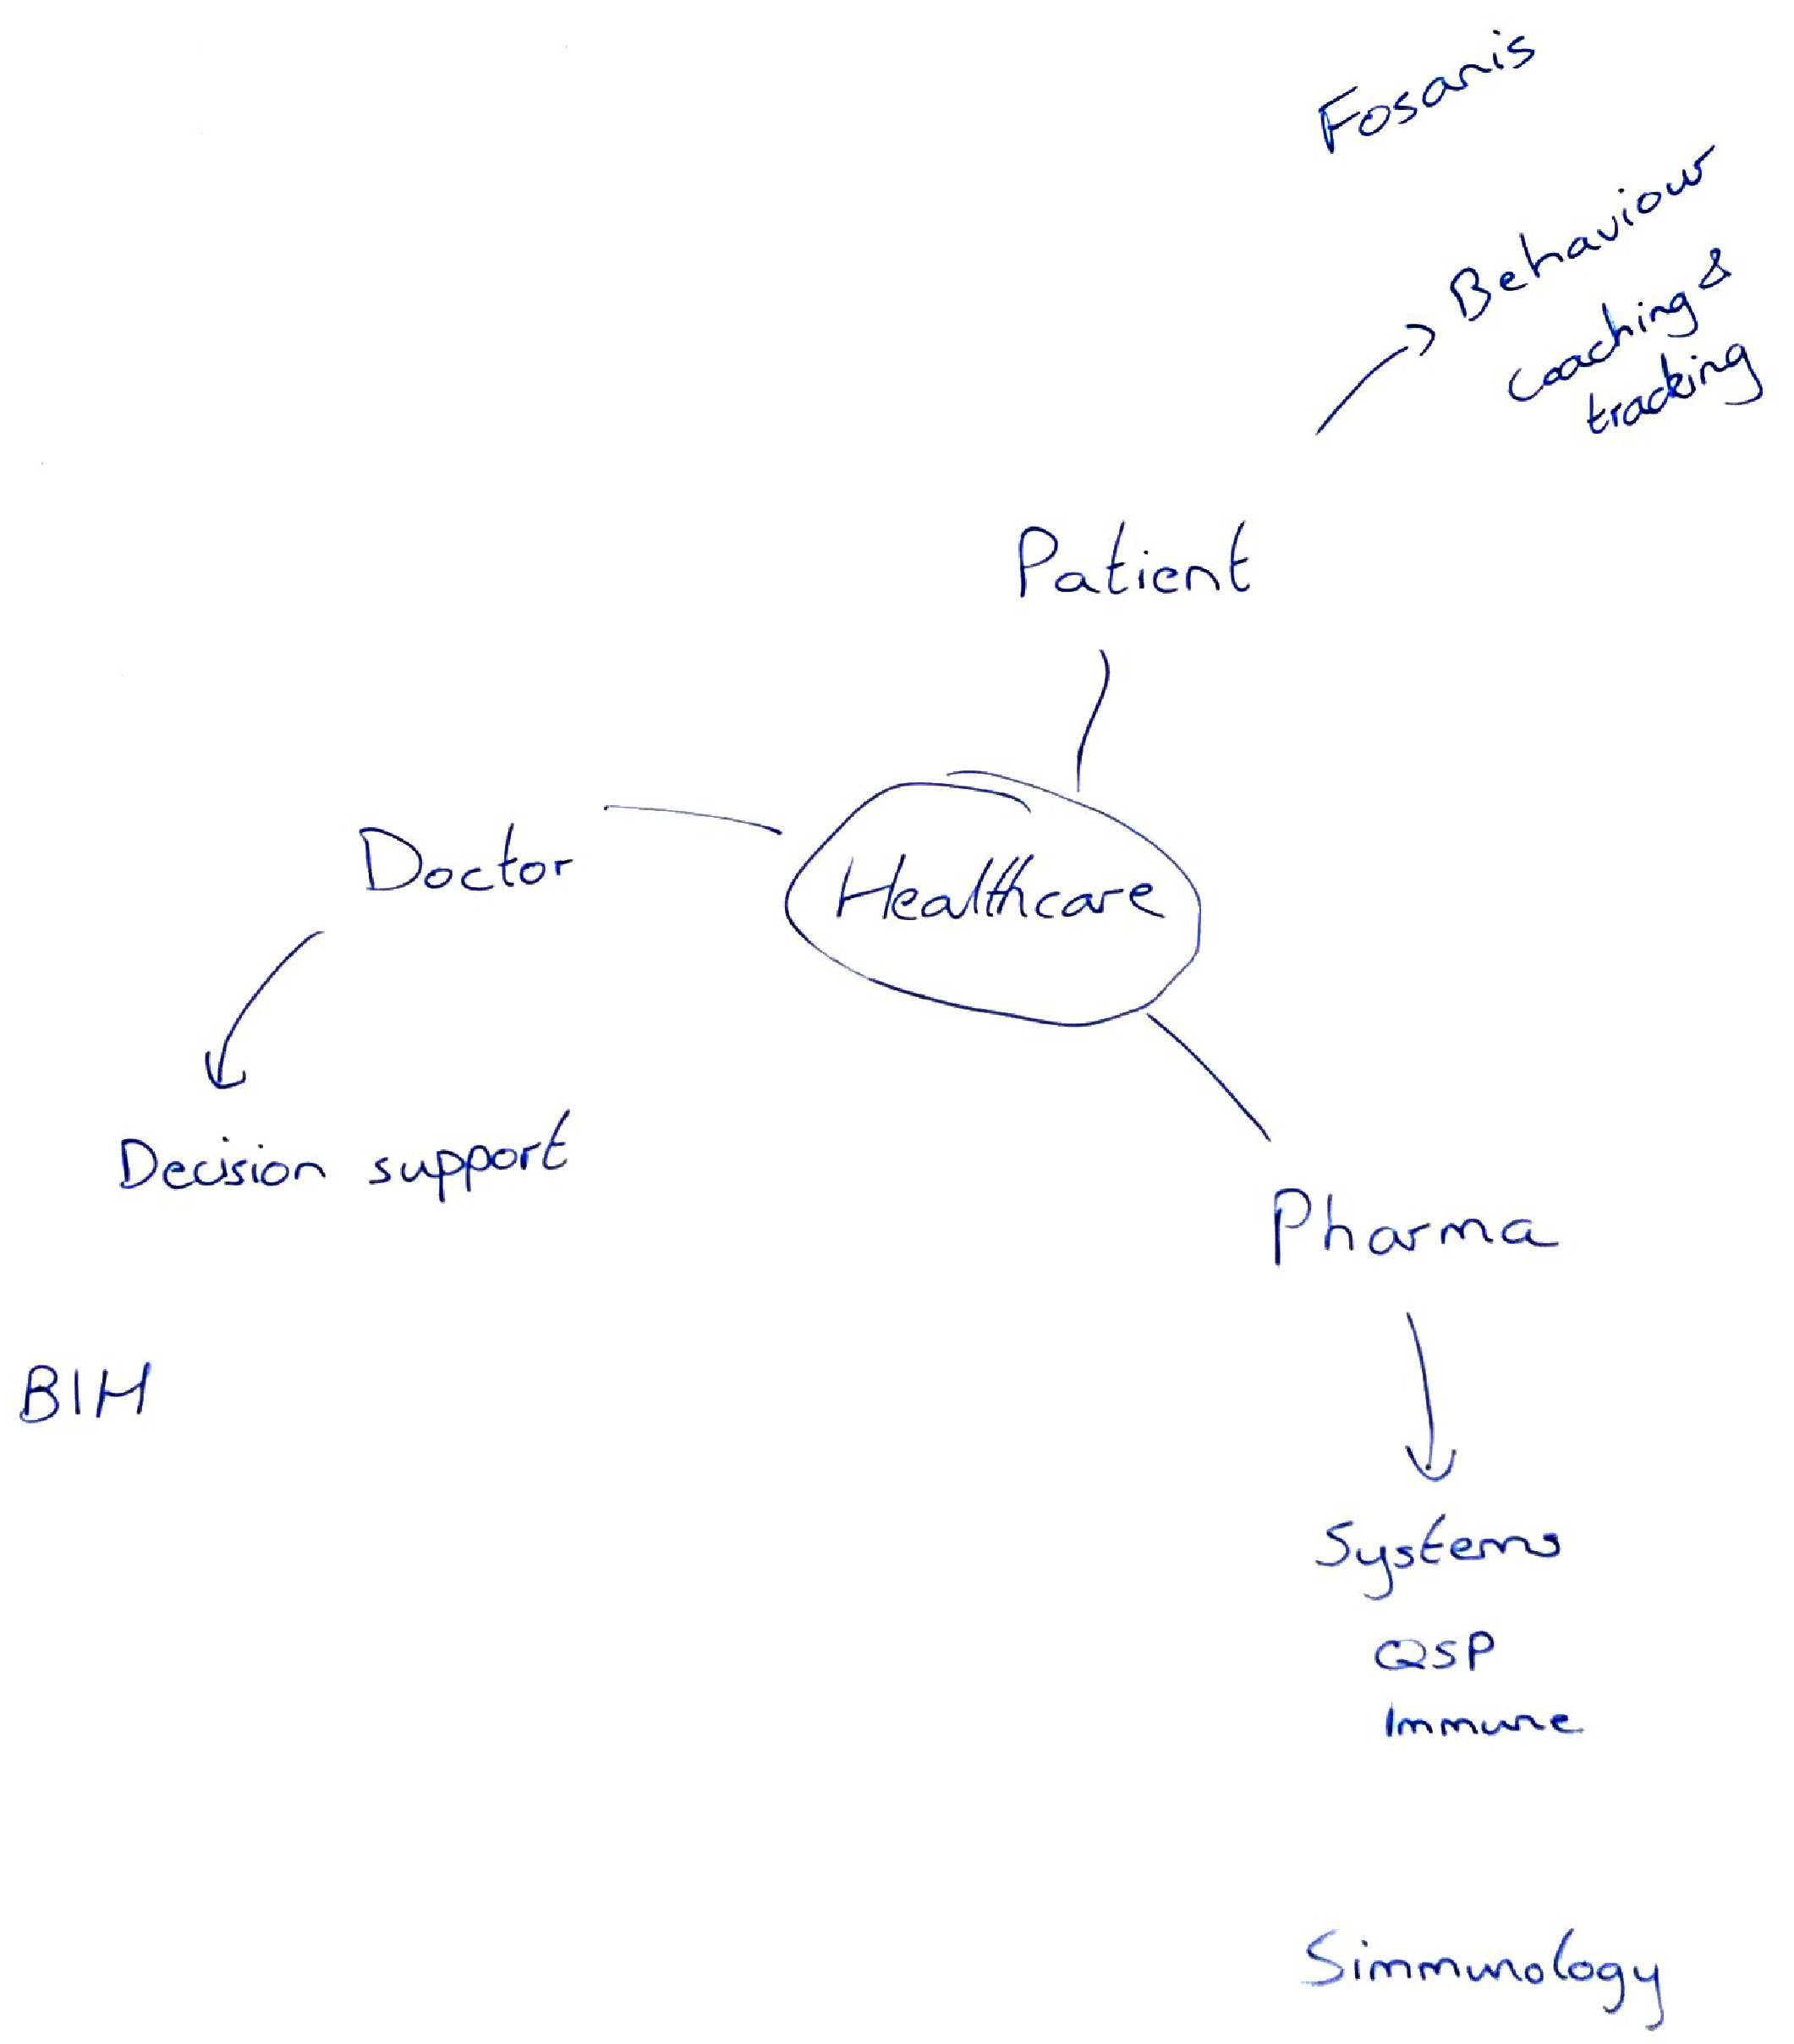 Mind map of healthcare projects